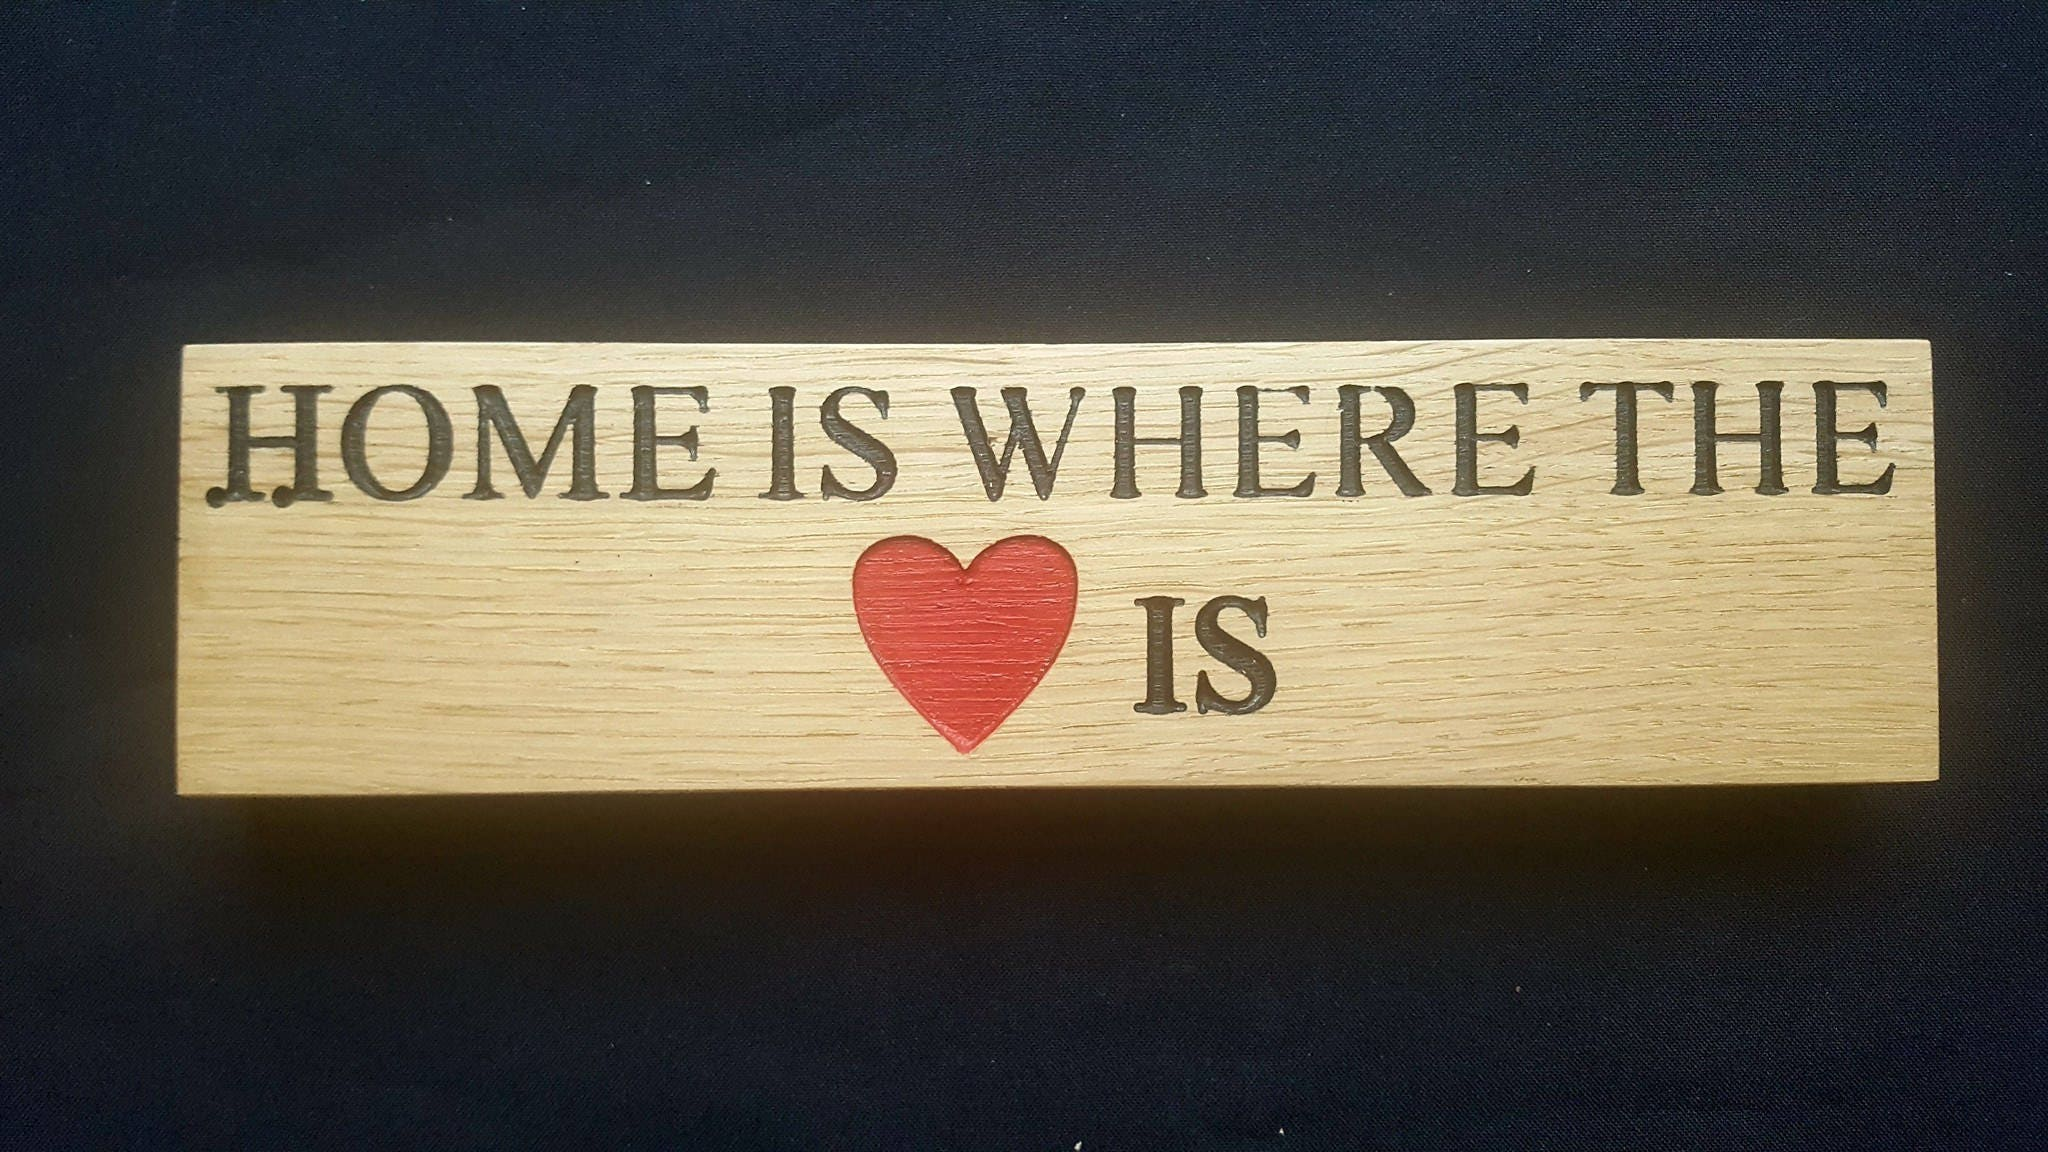 OAK - Home Is Where The Heart Is - Free standing Wooden Sign Plaque ...